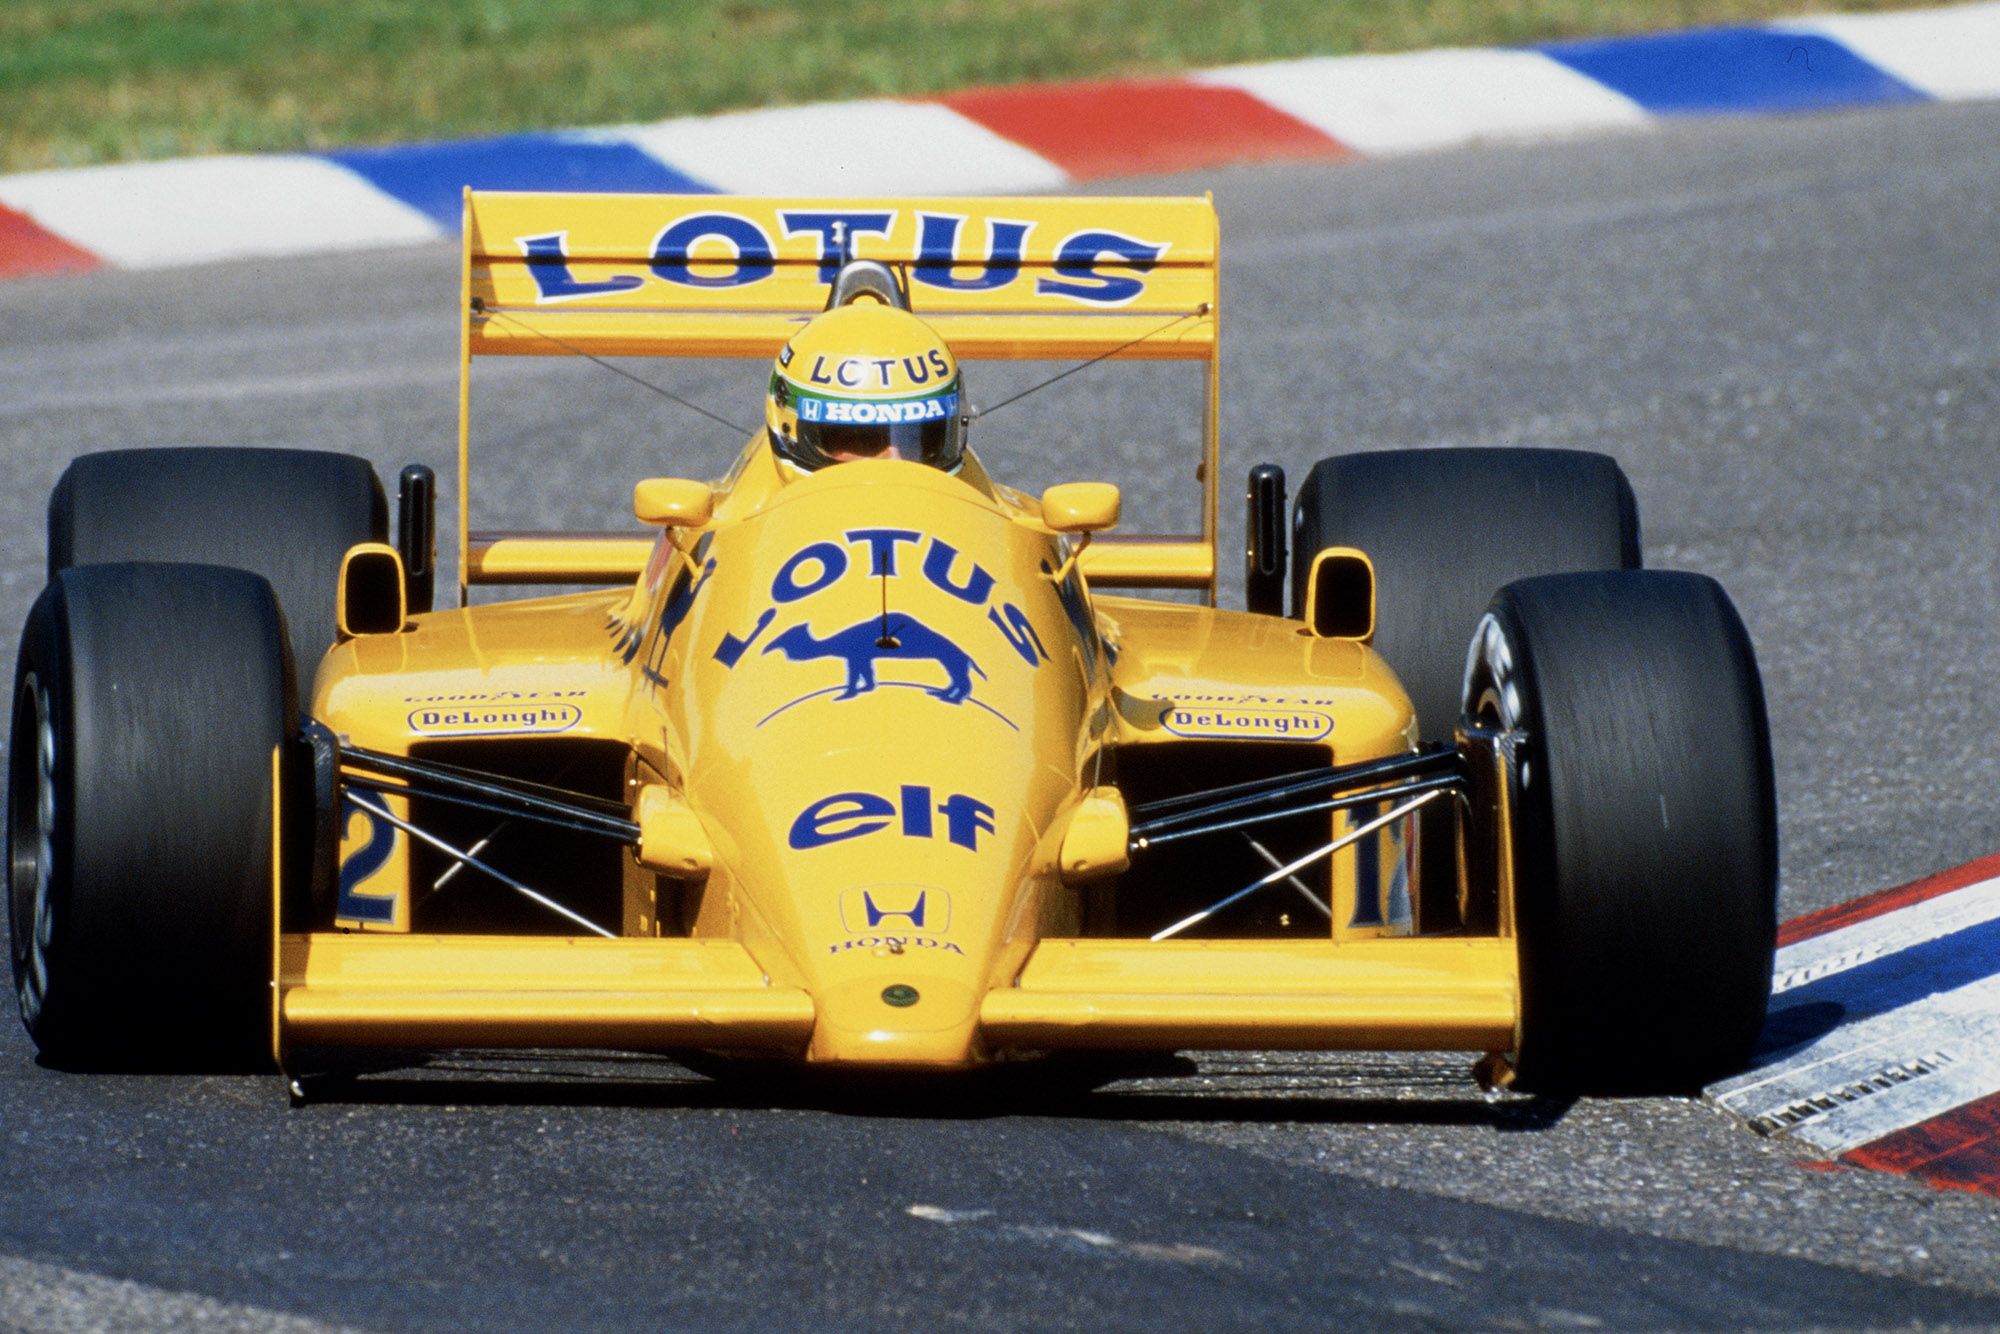 Ayrton Senna in the 1987 Lotus Honda during the German Grand Prix at Hockenheim